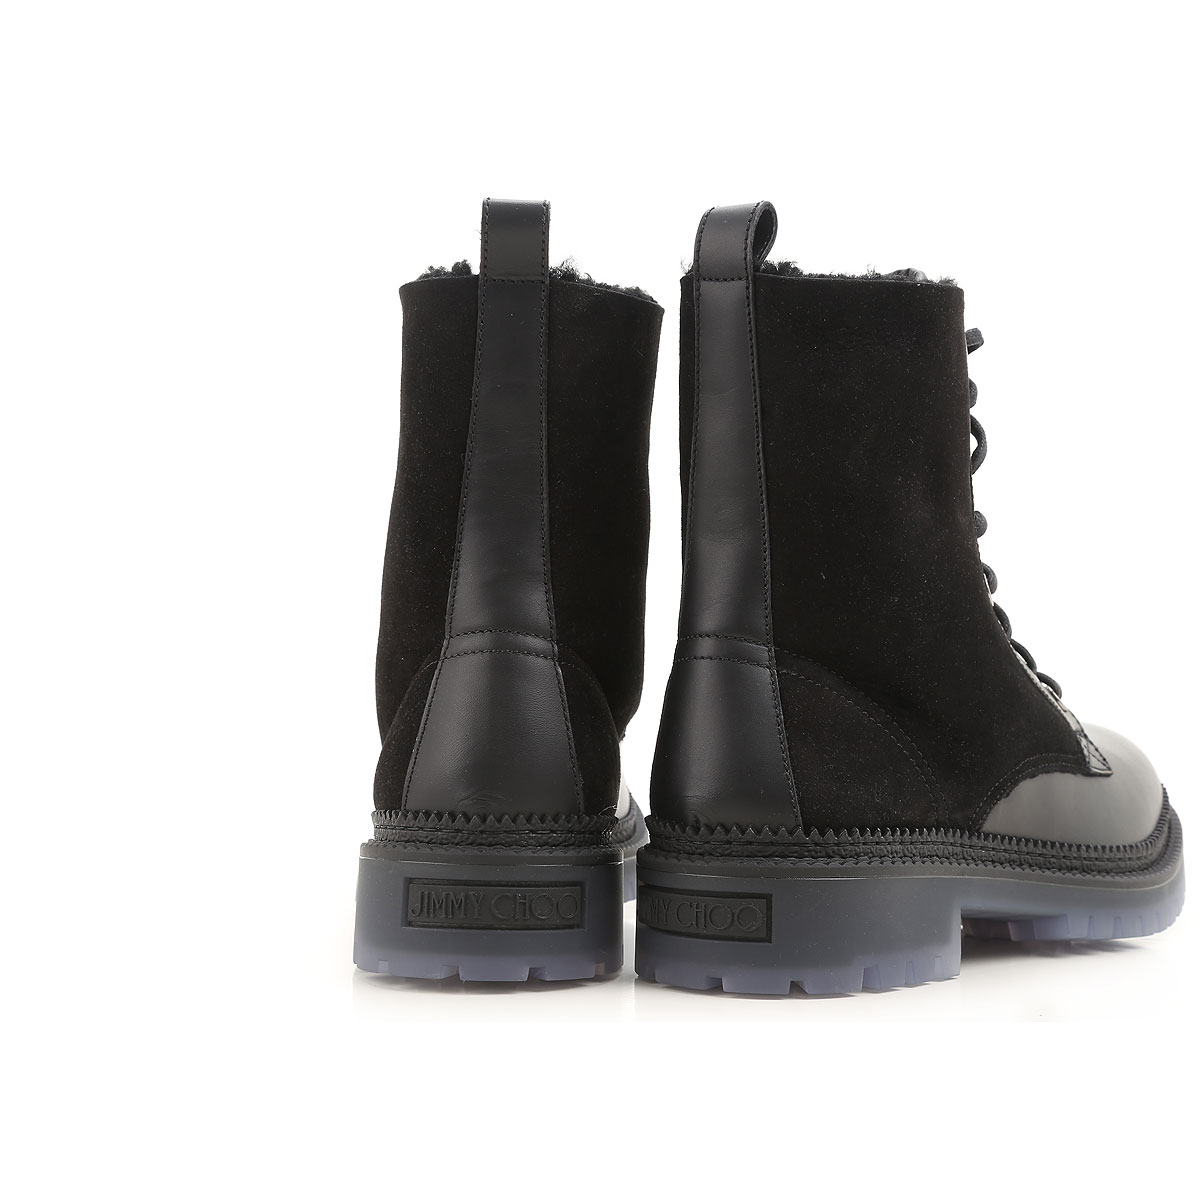 Jimmy Choo Boots for Men Booties On Sale in Outlet USA - GOOFASH